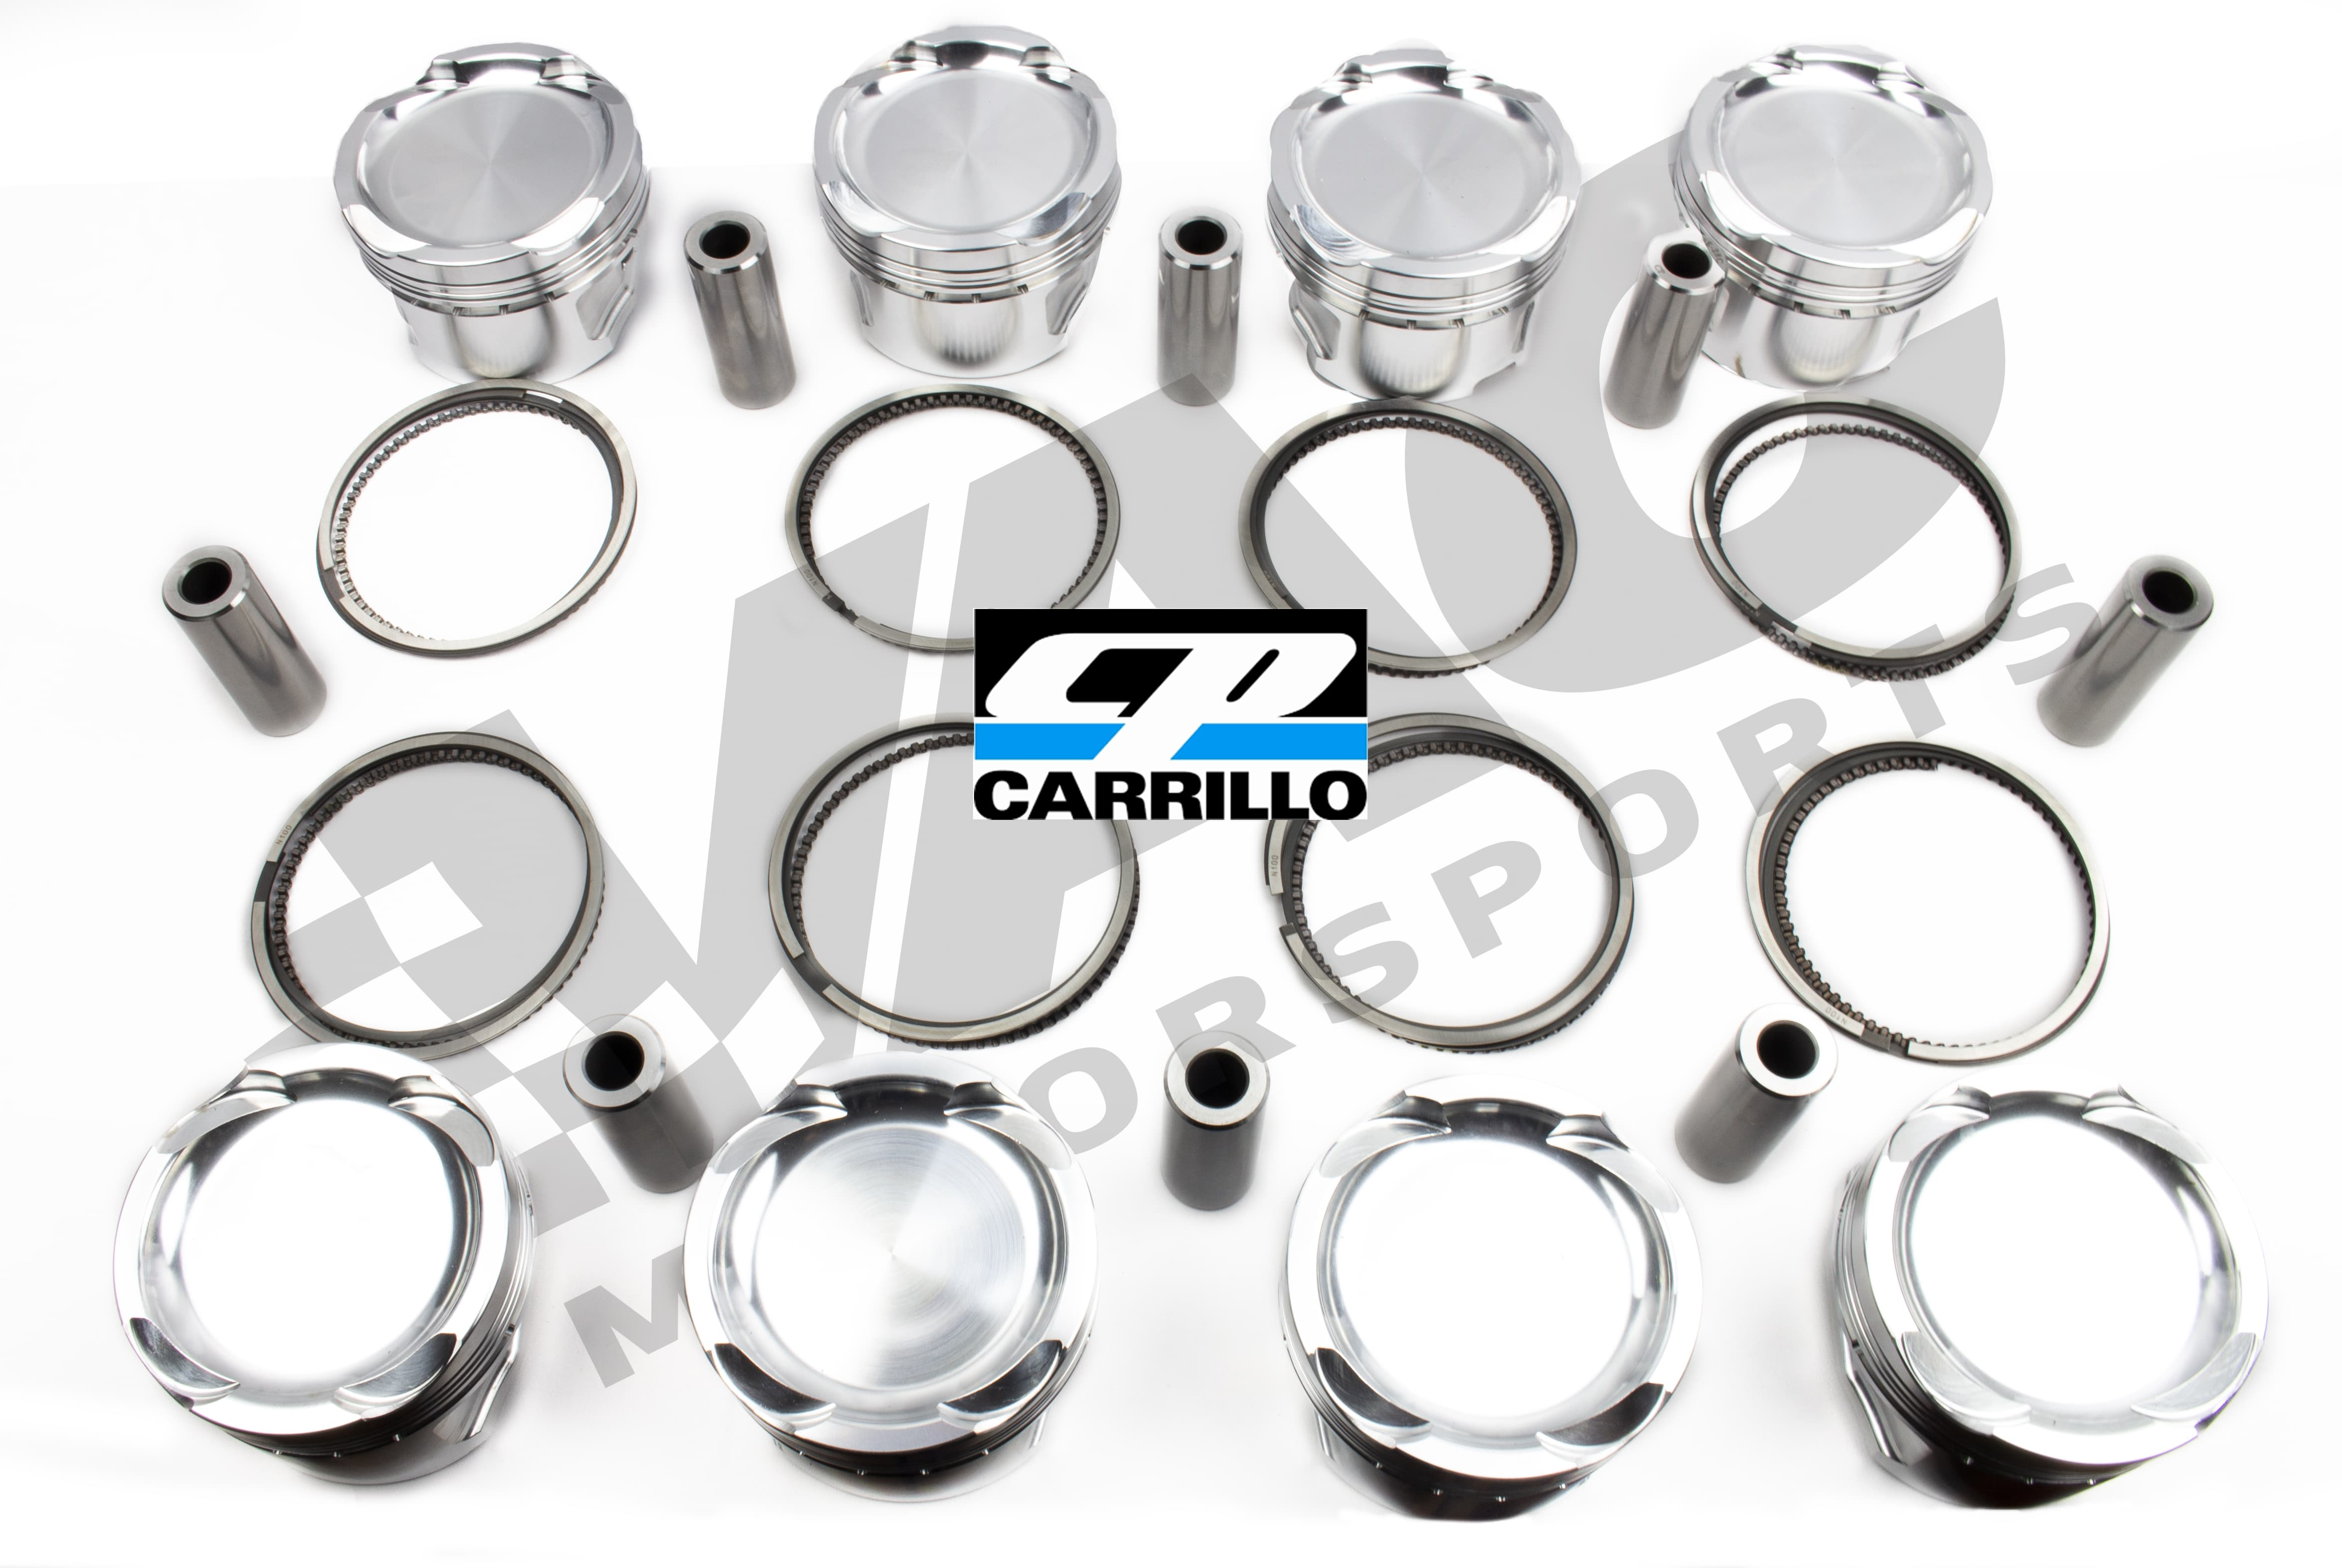 CP-Carrillo Forged Piston Set (Sleeved BMW S62) THUMBNAIL